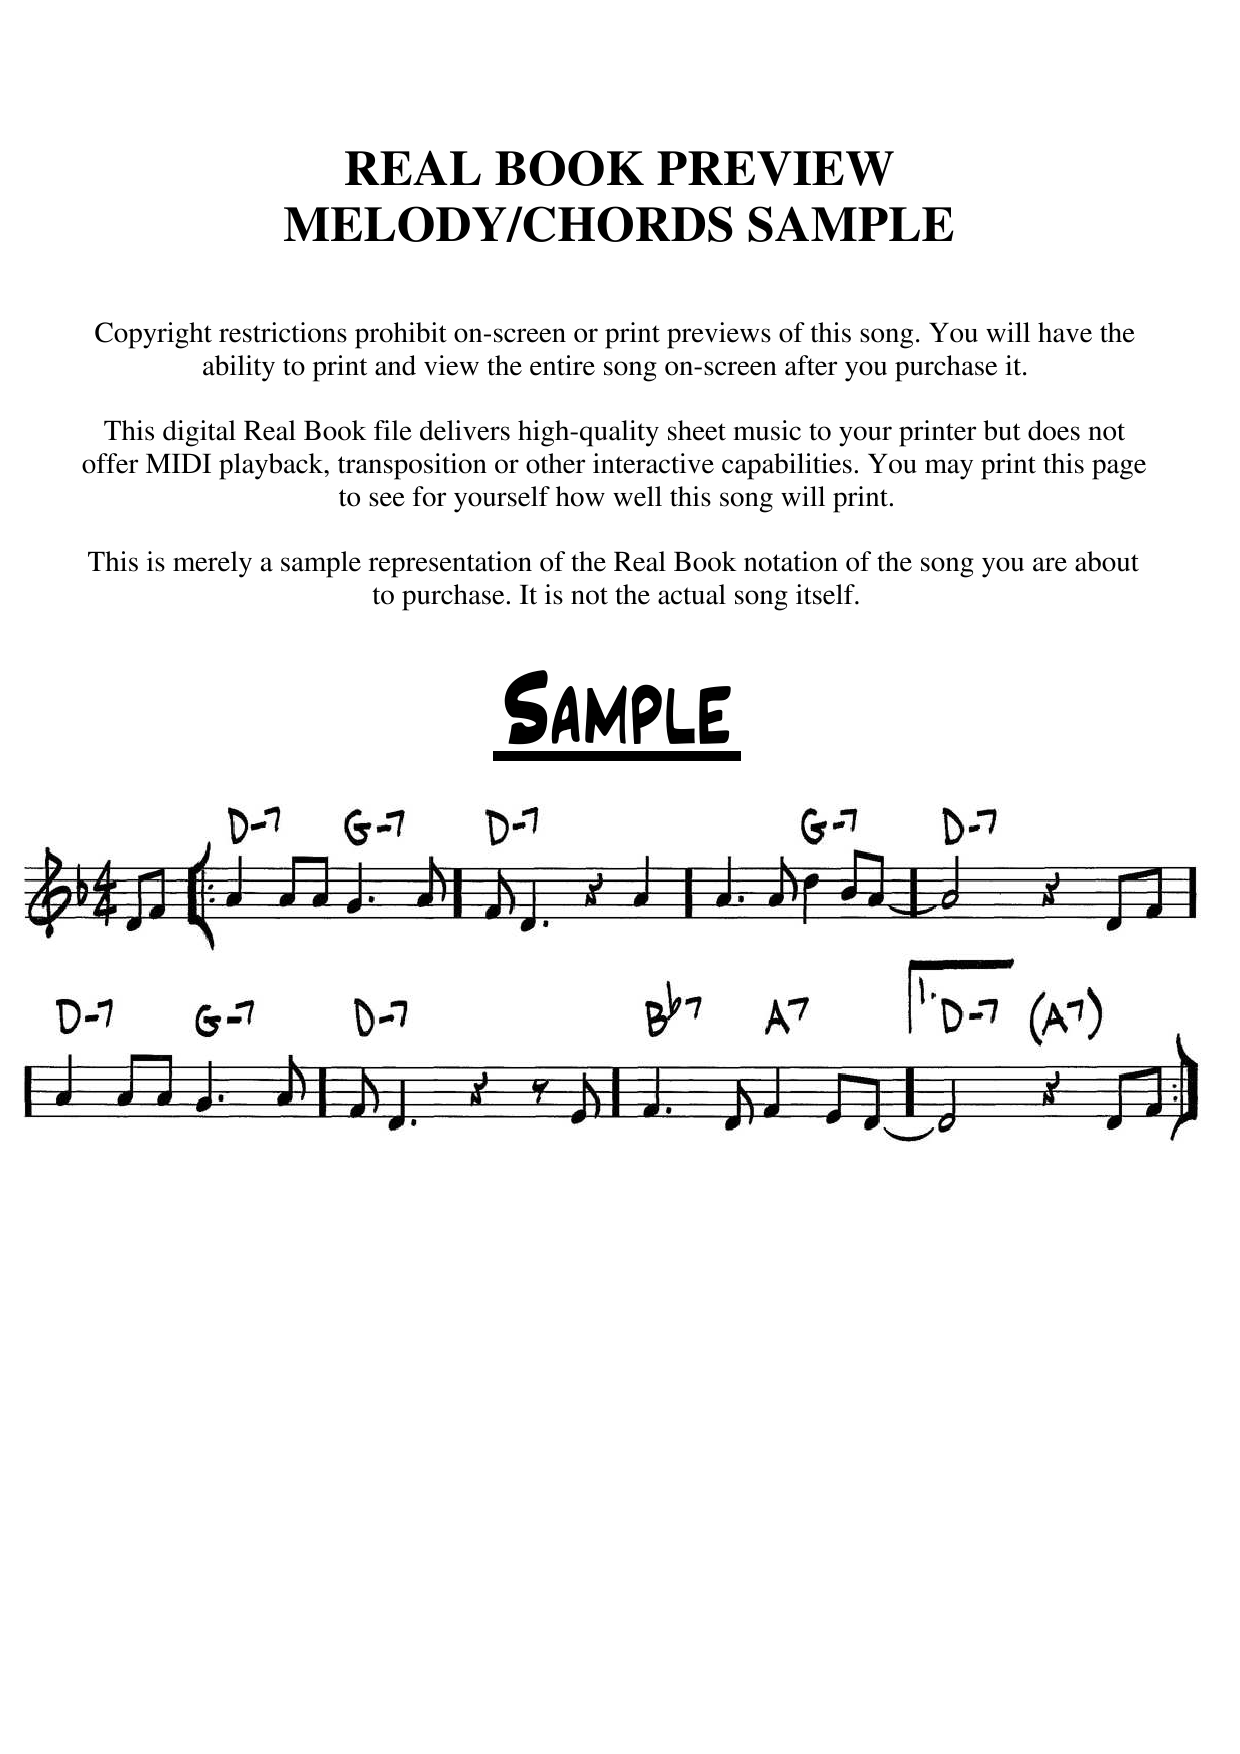 Bacharach & David The Look Of Love sheet music notes and chords. Download Printable PDF.